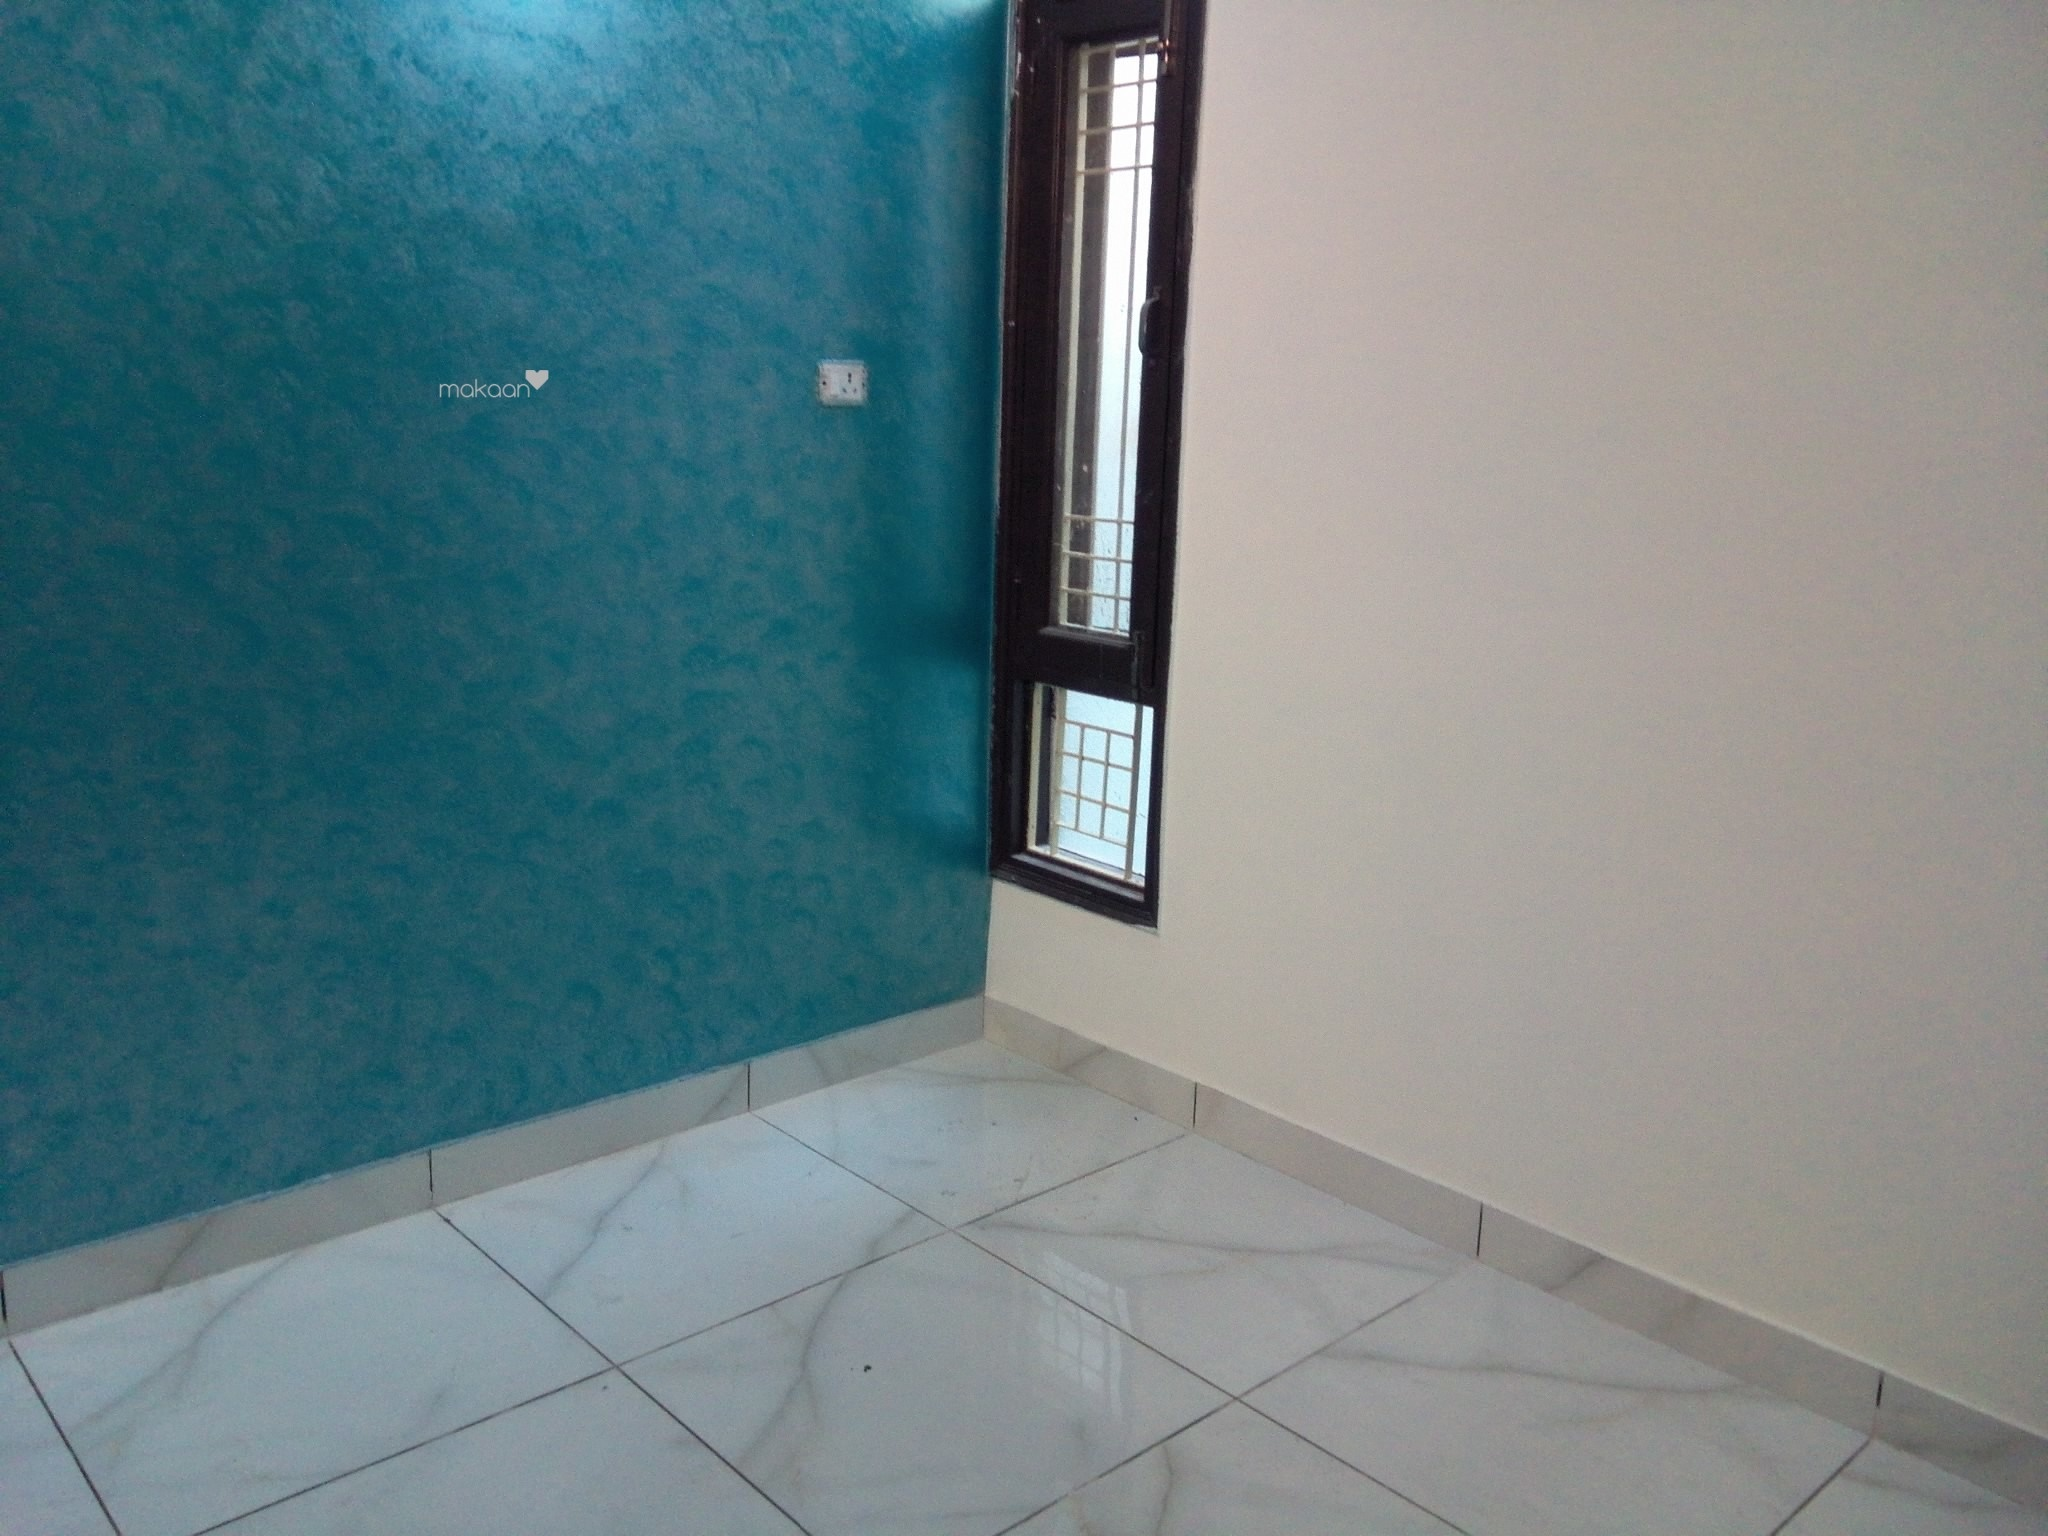 2600 sq ft 4BHK 4BHK+4T (2,600 sq ft) Property By Demera Homz In Project, Sector 5 Vasundhara